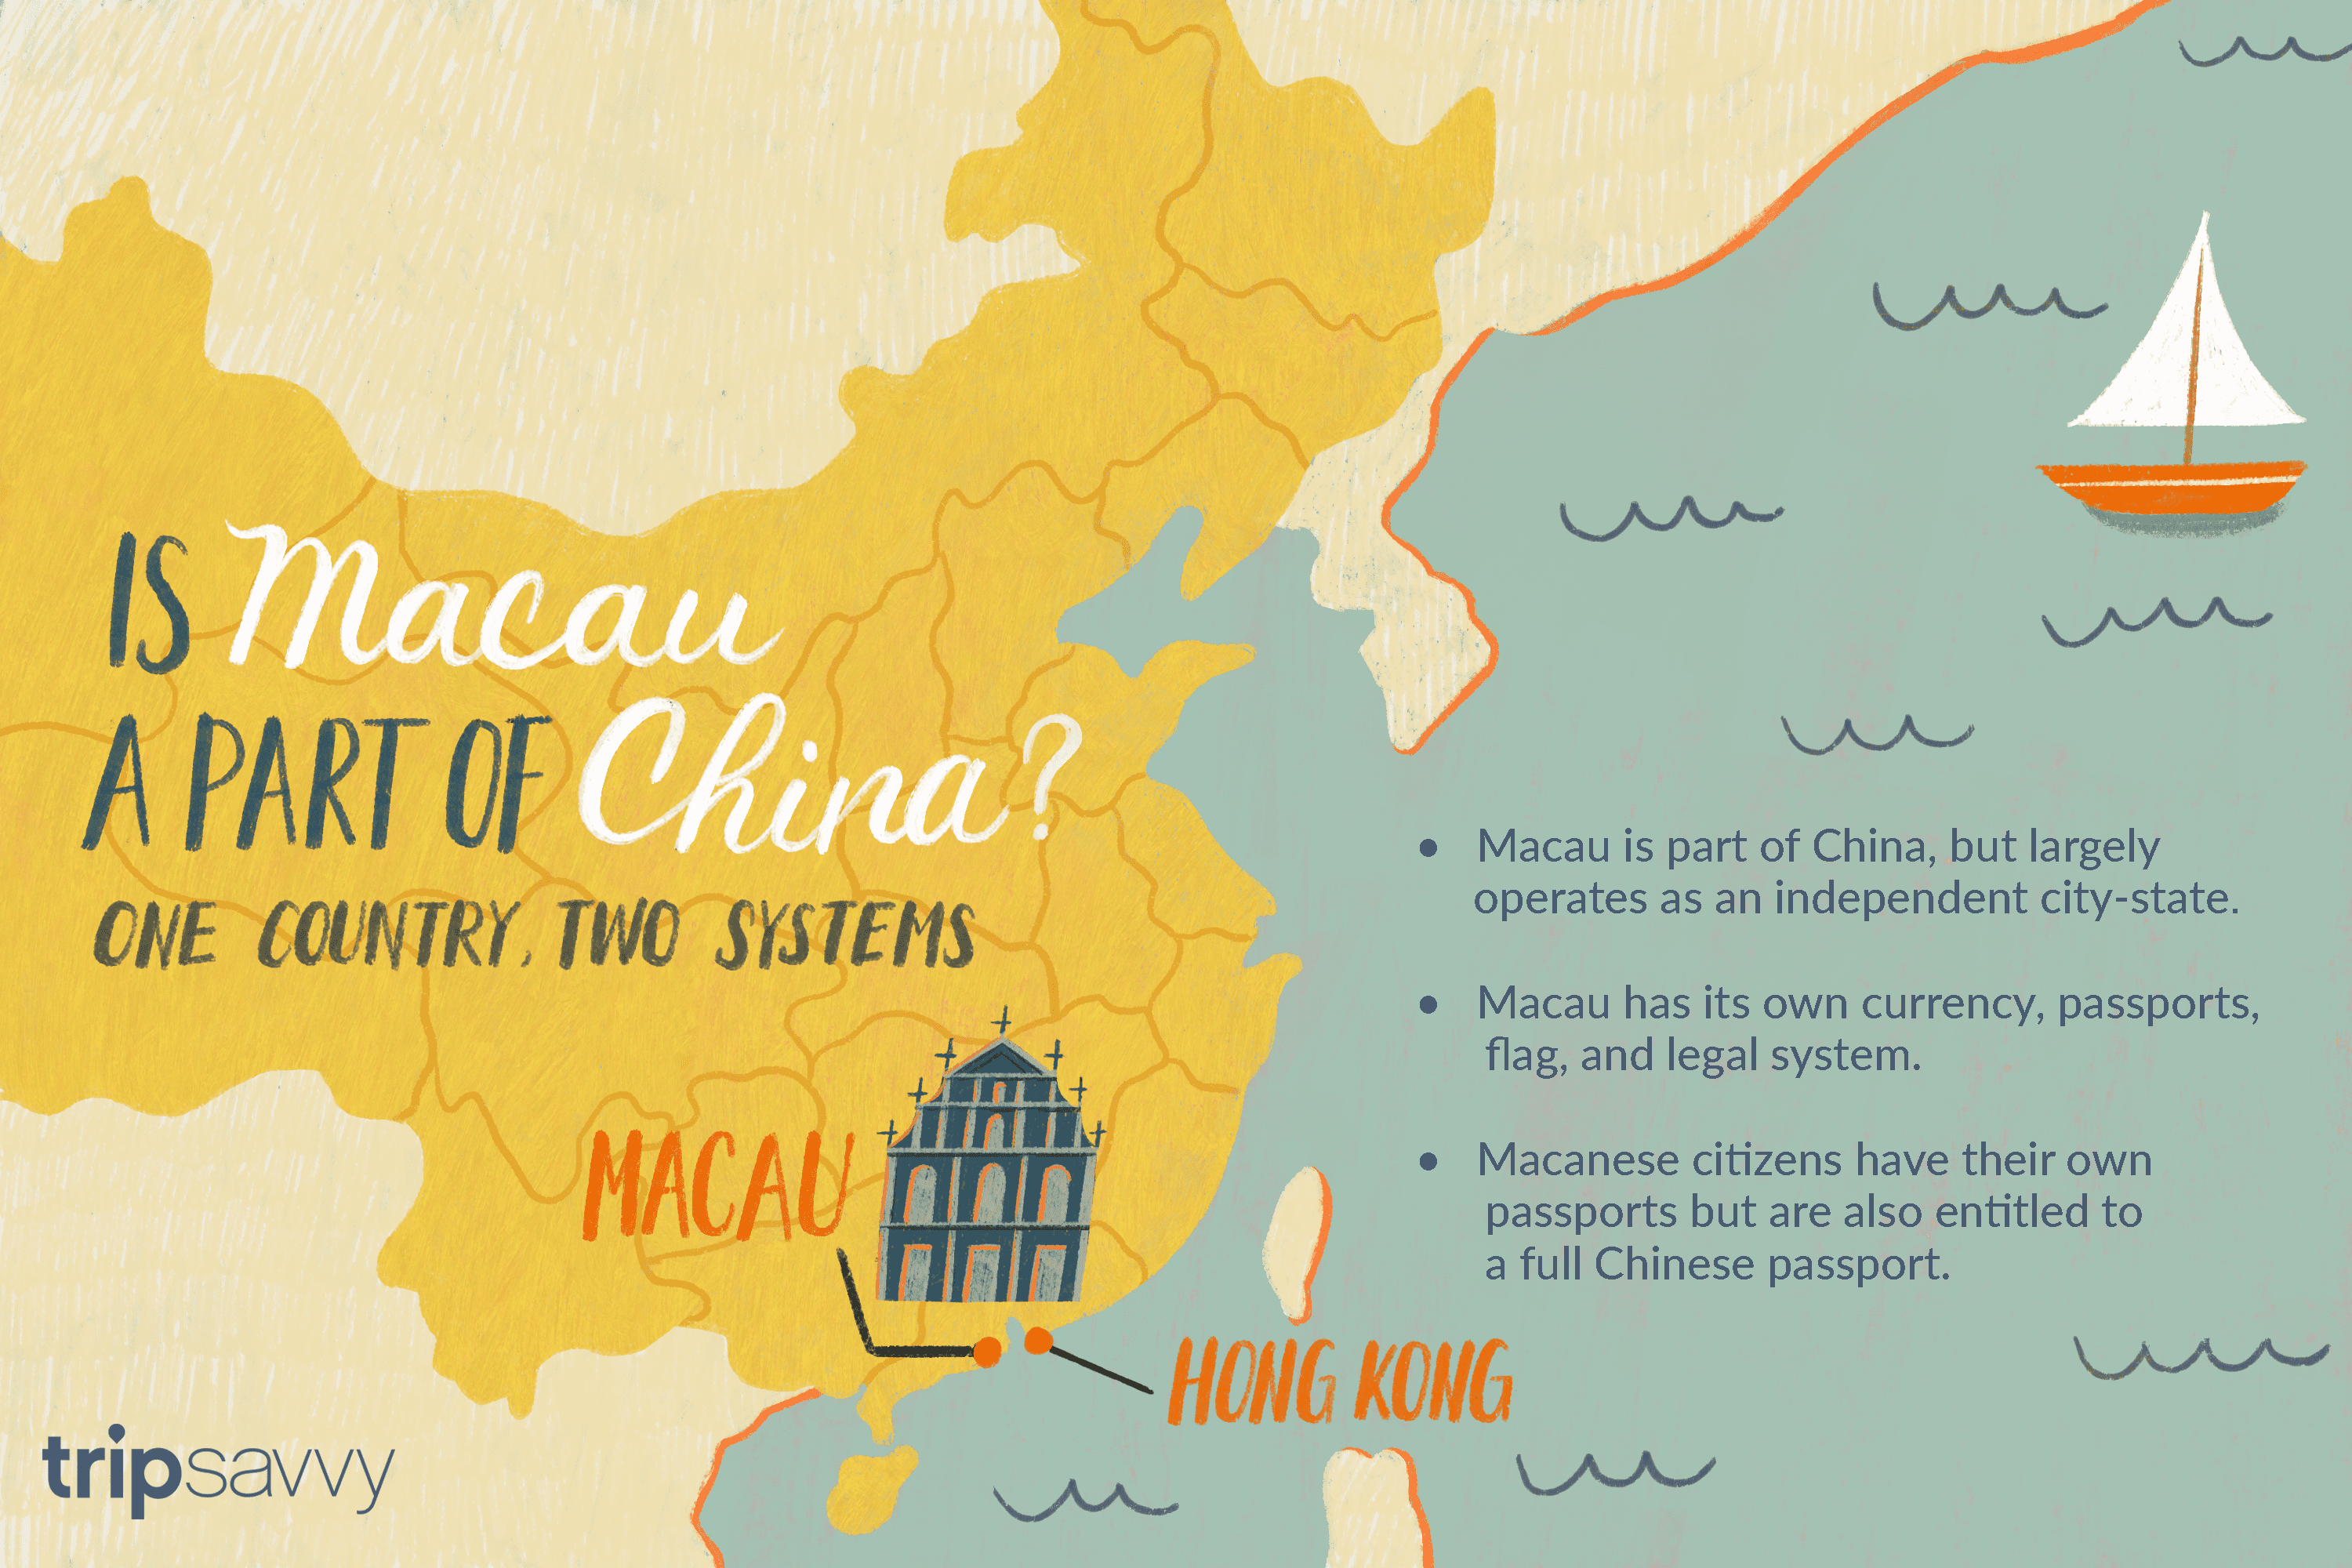 Is Macau Part of China?